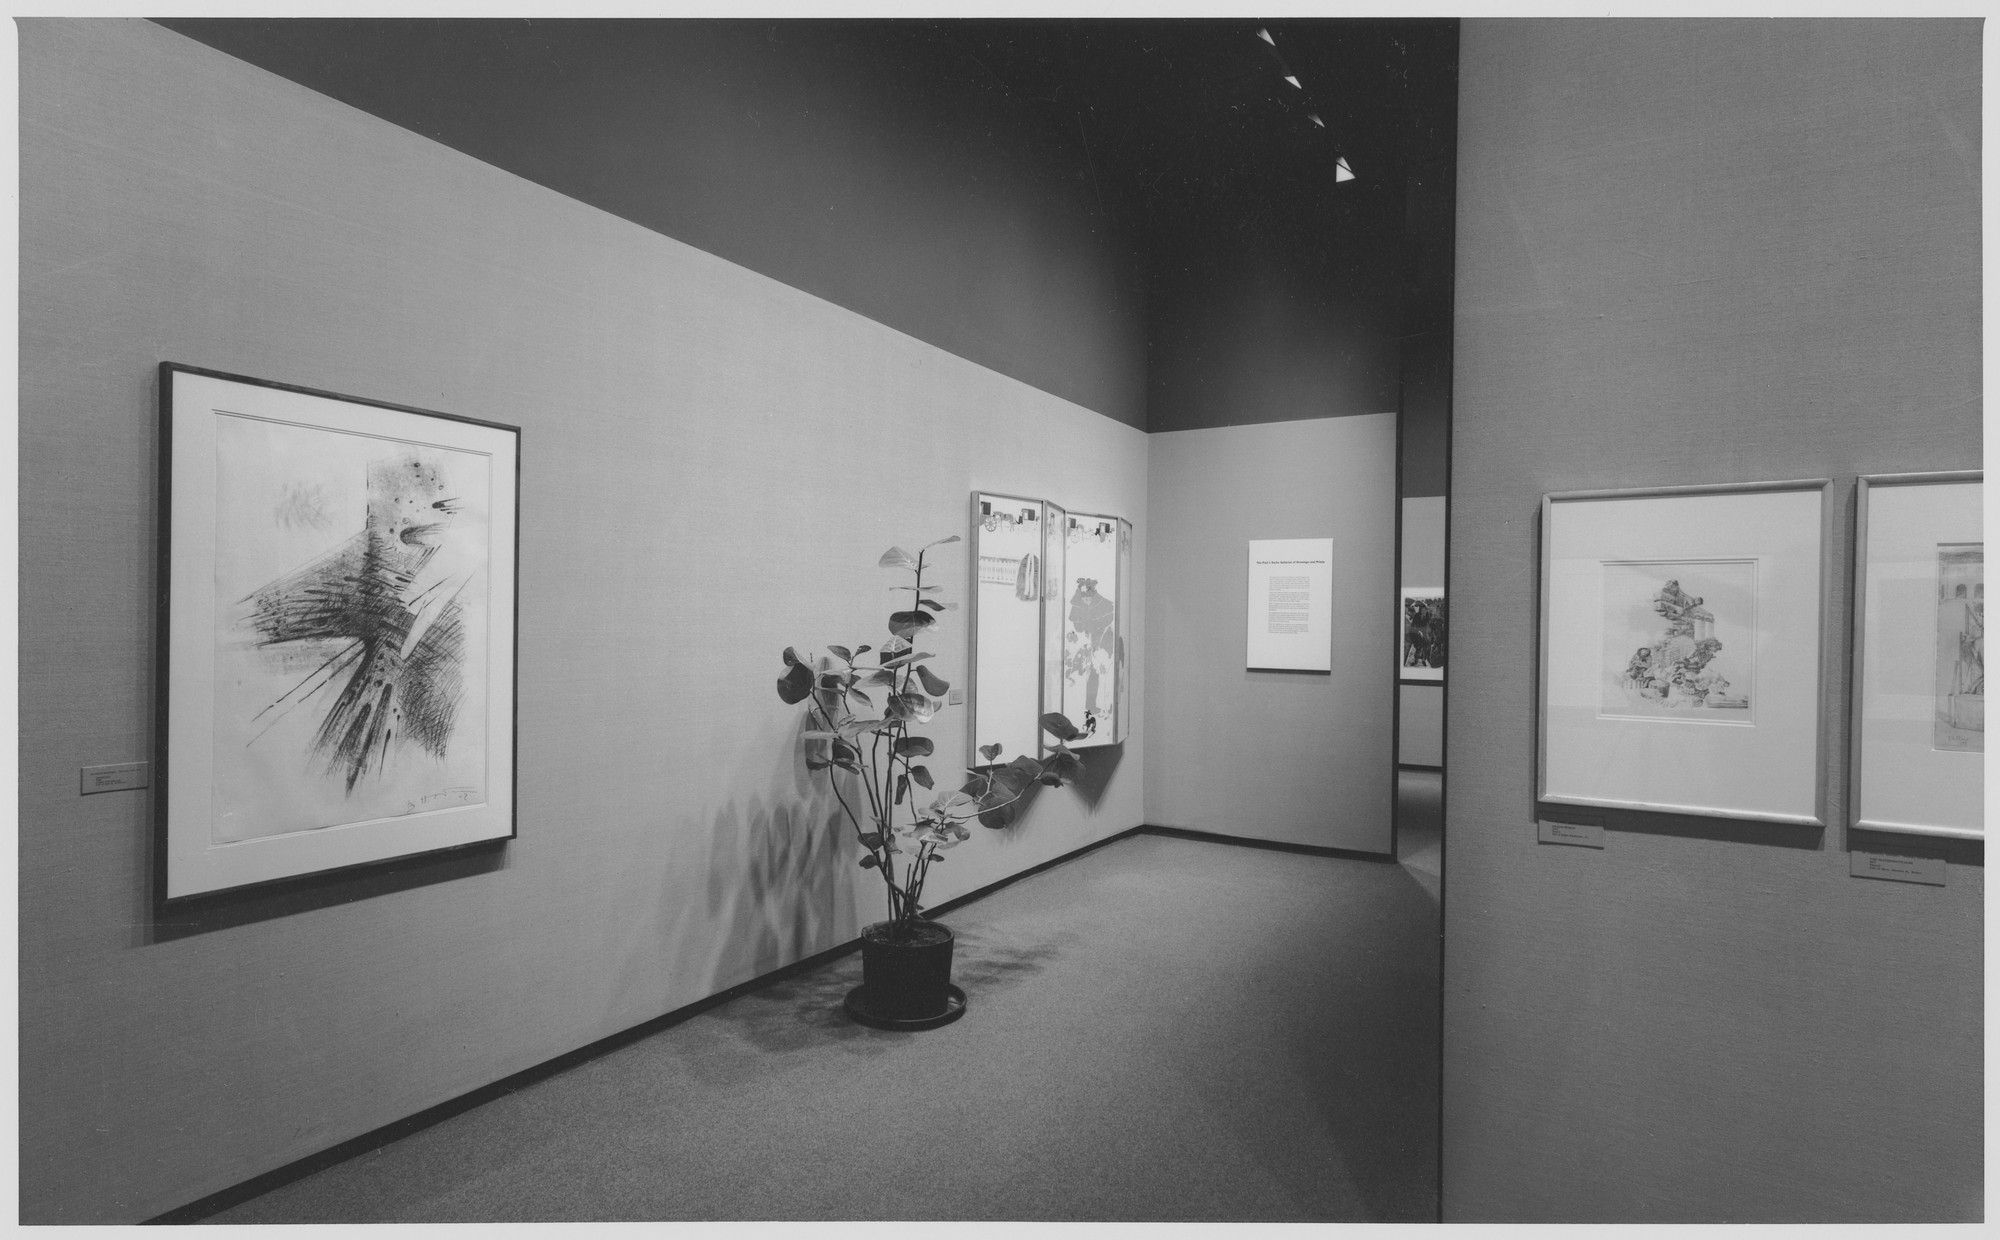 "Installation view of the exhibition, ""Paul J. Sachs Gallery Print Re-installation."" March 3, 1966 [unknown closing date]. Photographic Archive. The Museum of Modern Art Archives, New York. IN792.1. Photograph by George Cserna."